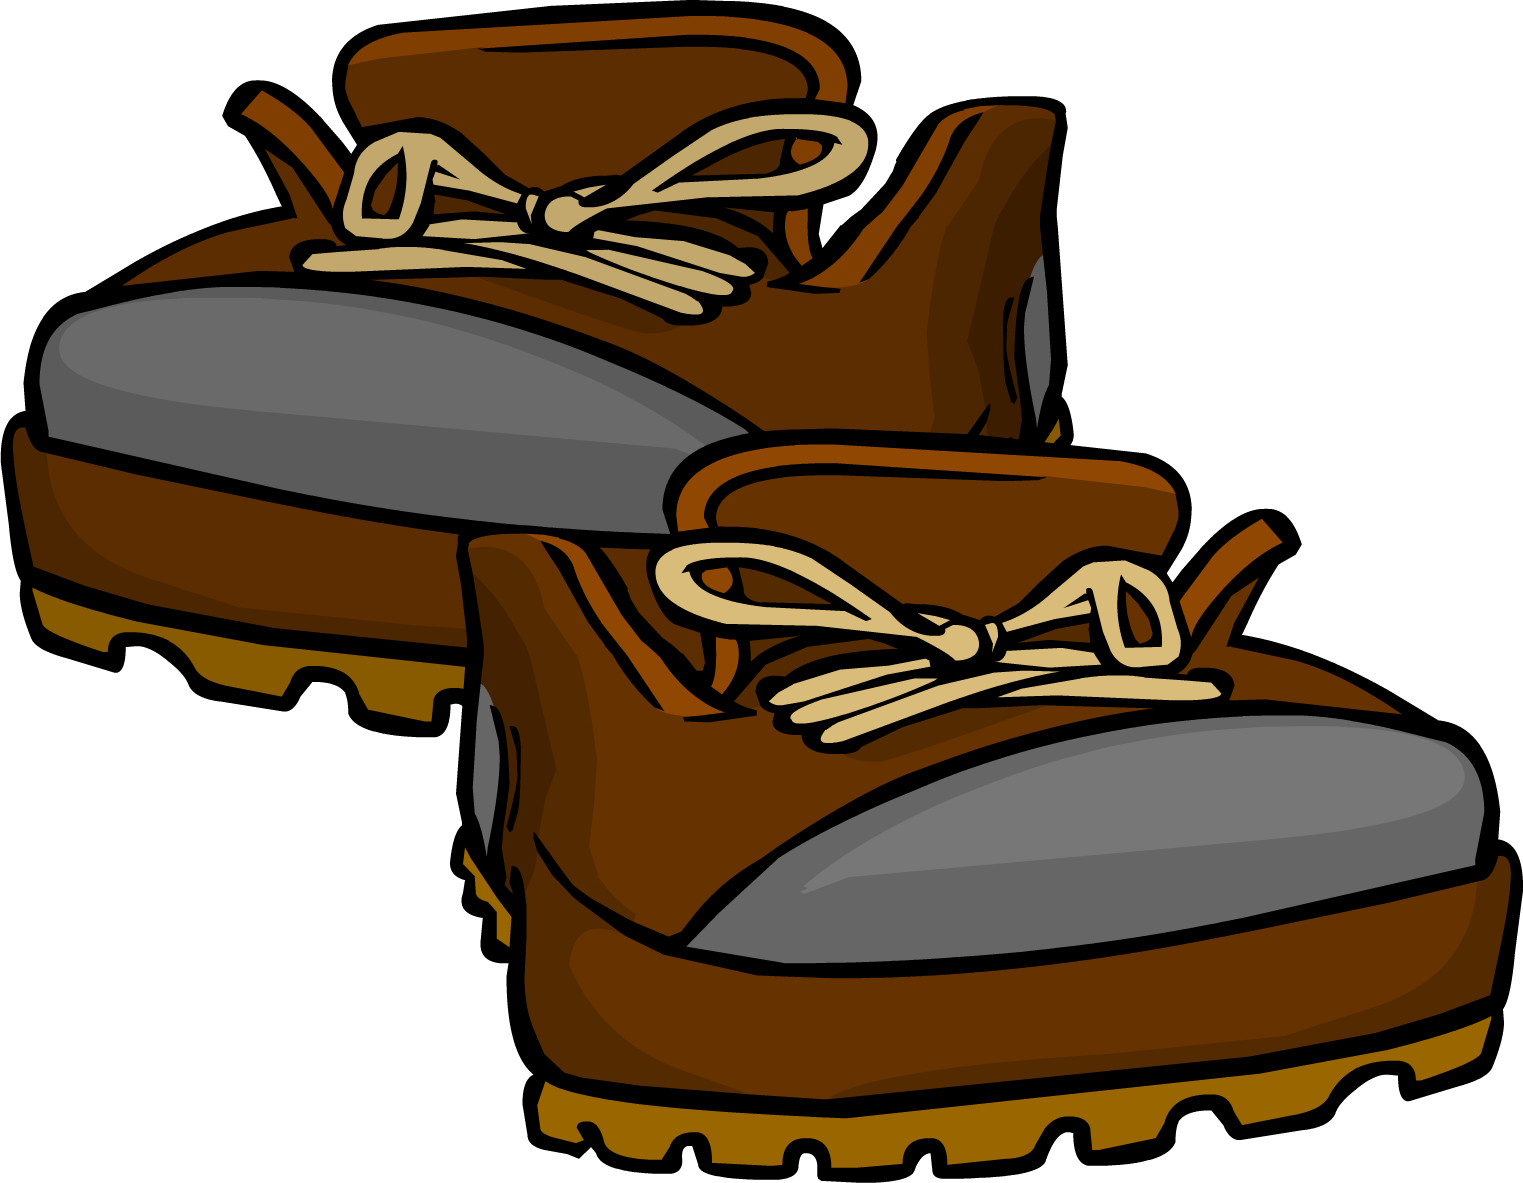 Hiking boots club penguin. Hike clipart brown boot